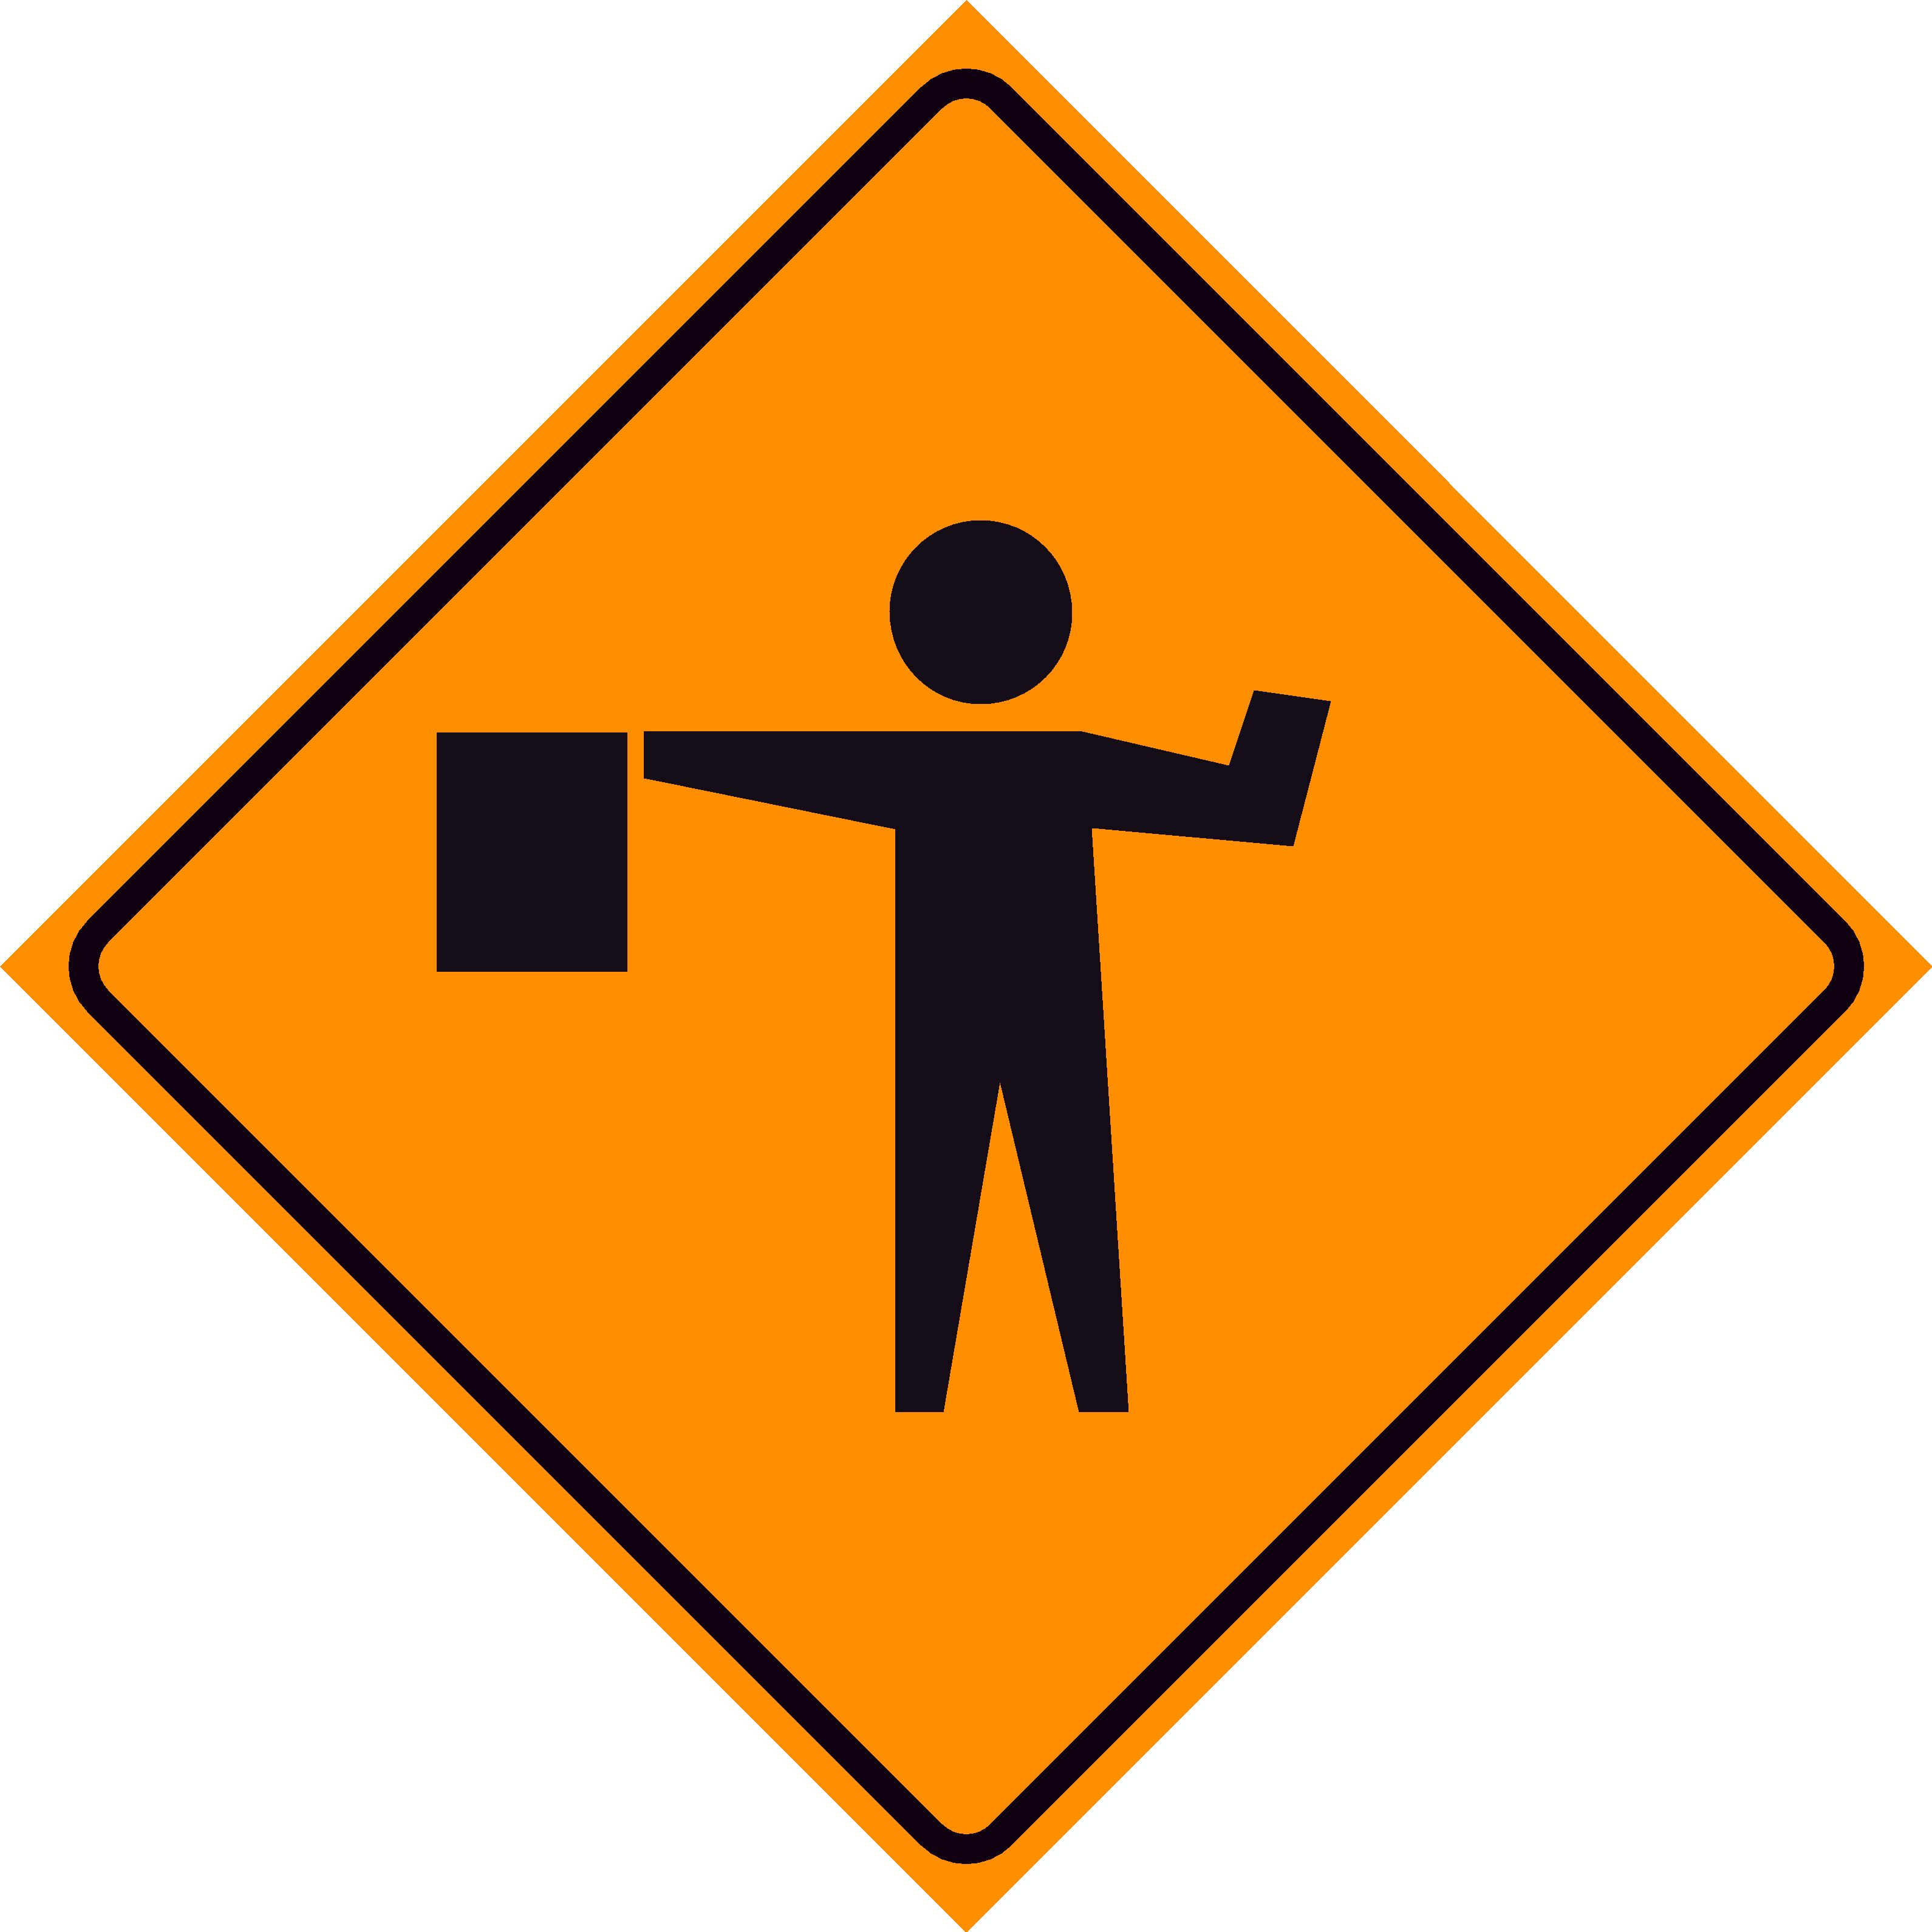 Road signs interstate sales signs pinterest construction signs construction signs biocorpaavc Choice Image